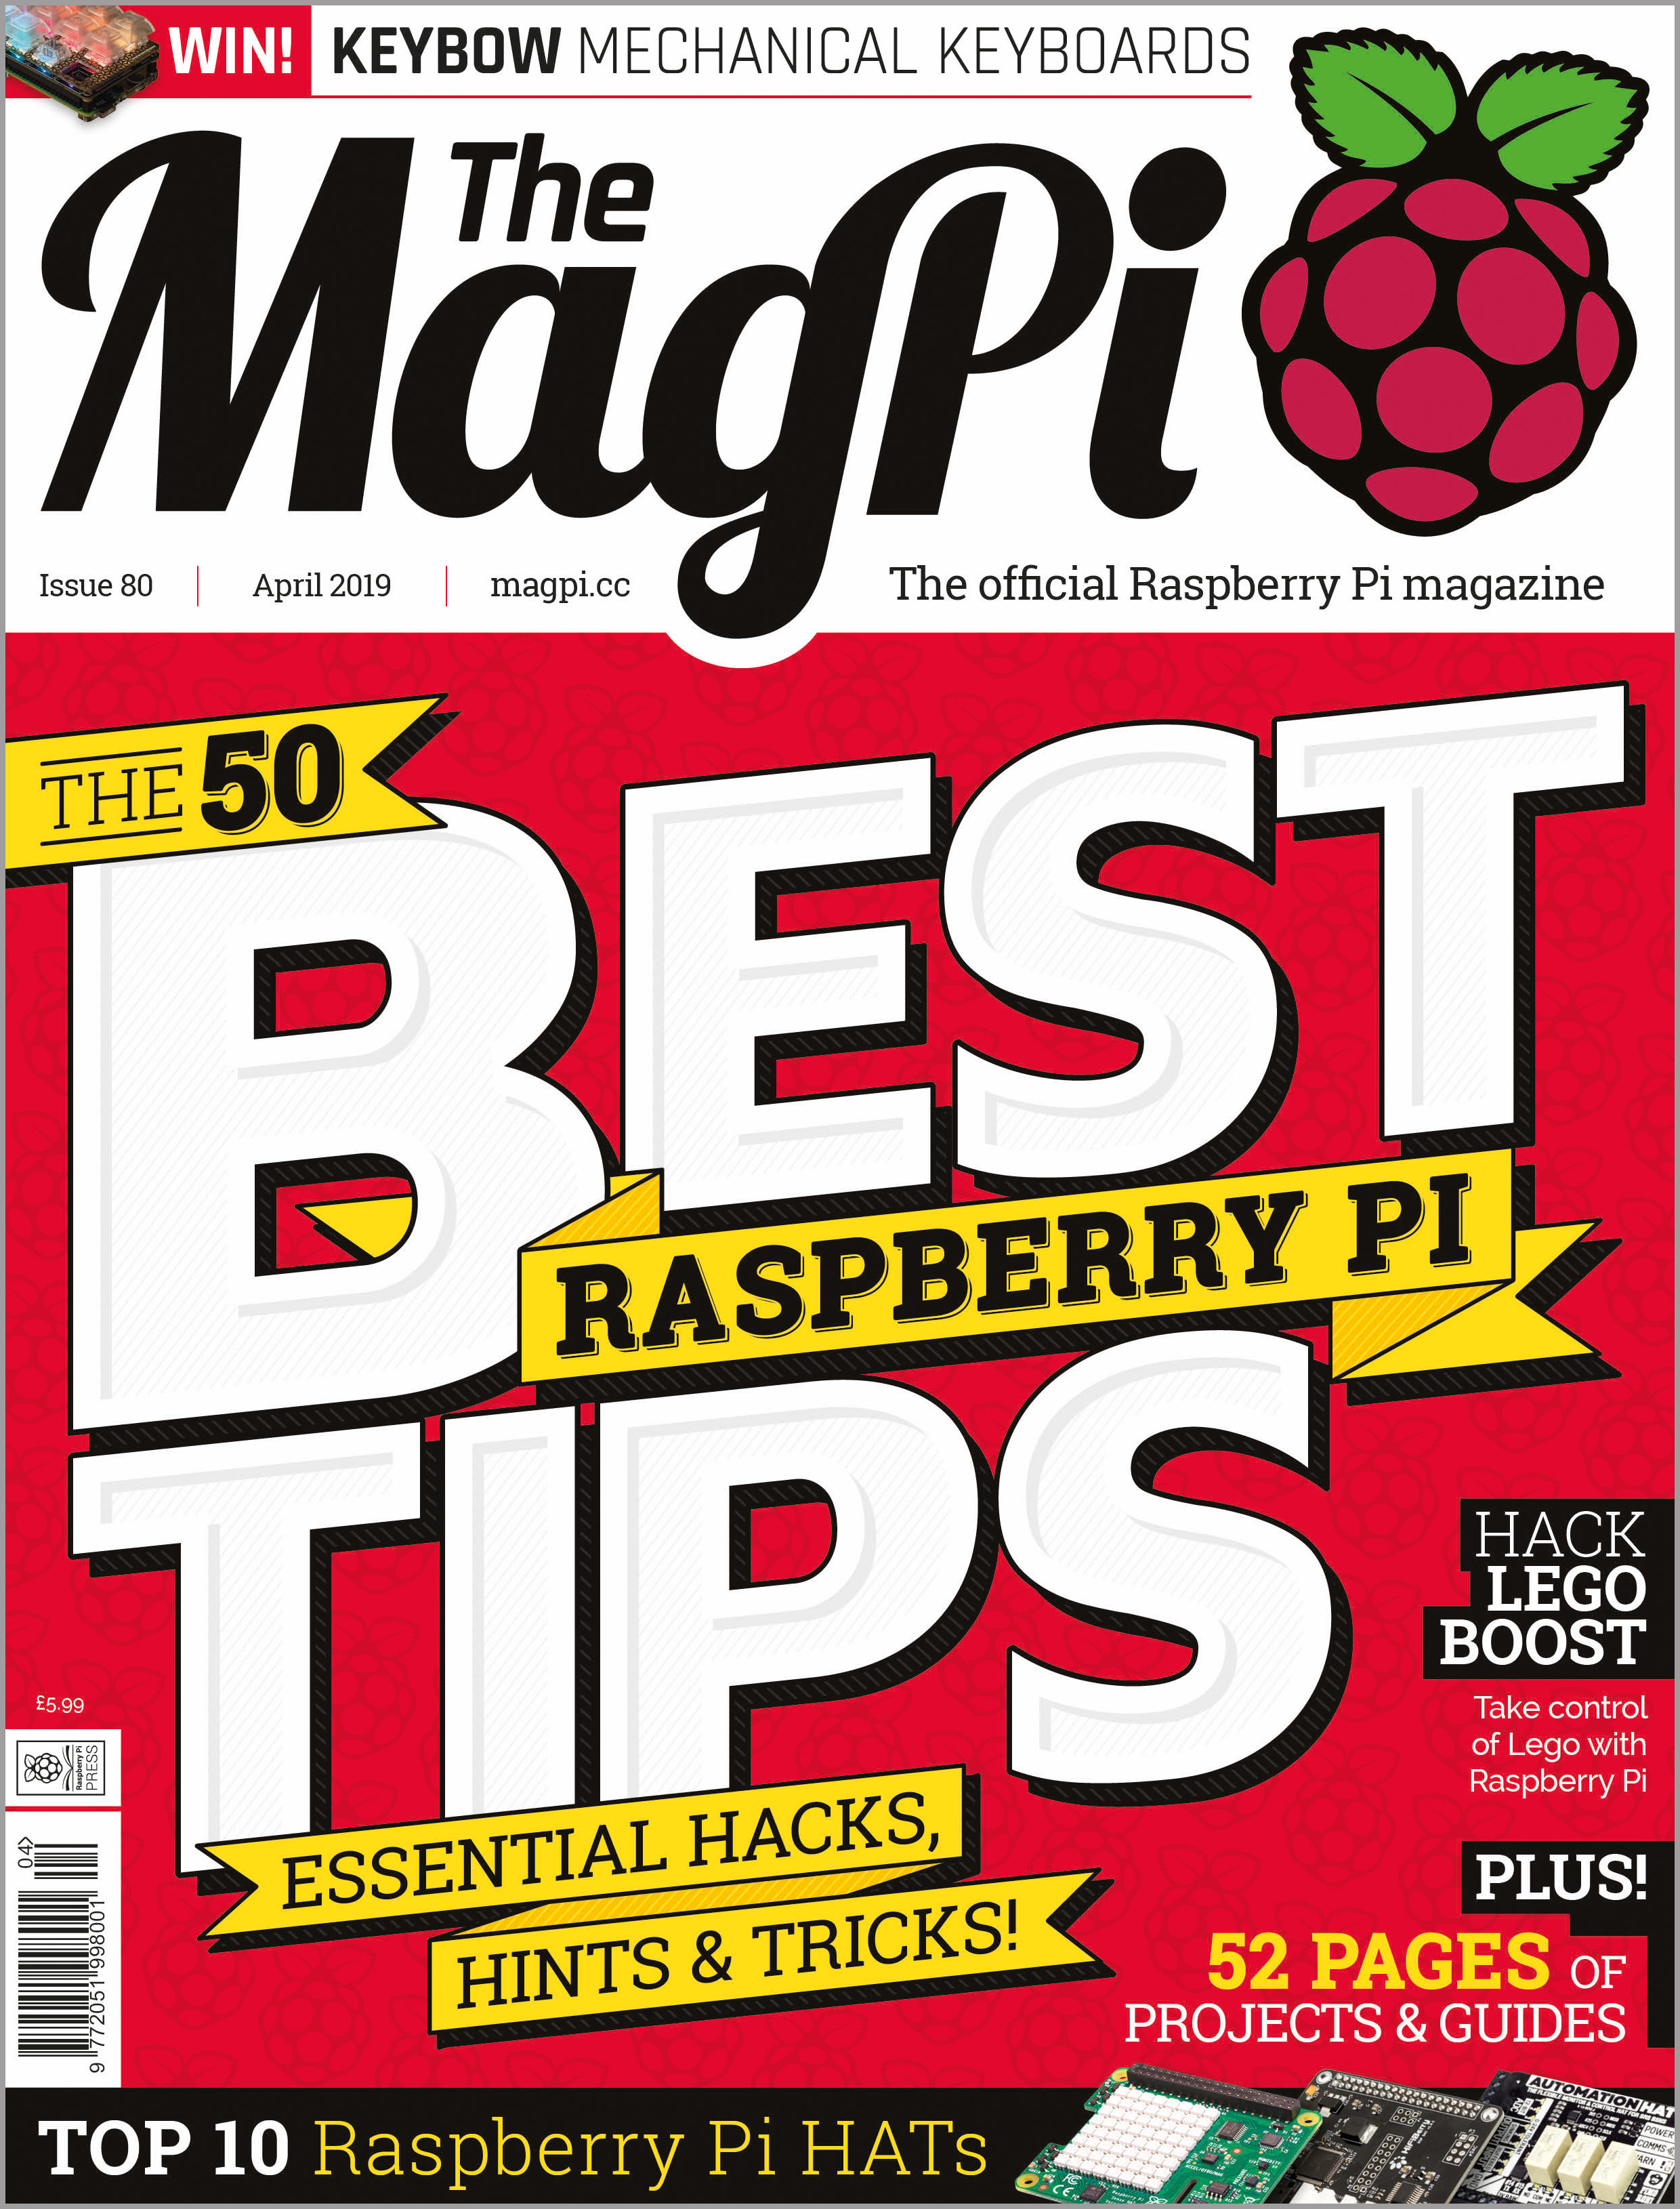 Yoga training with YogAI and a Raspberry Pi smart mirror | The MagPi issue 80